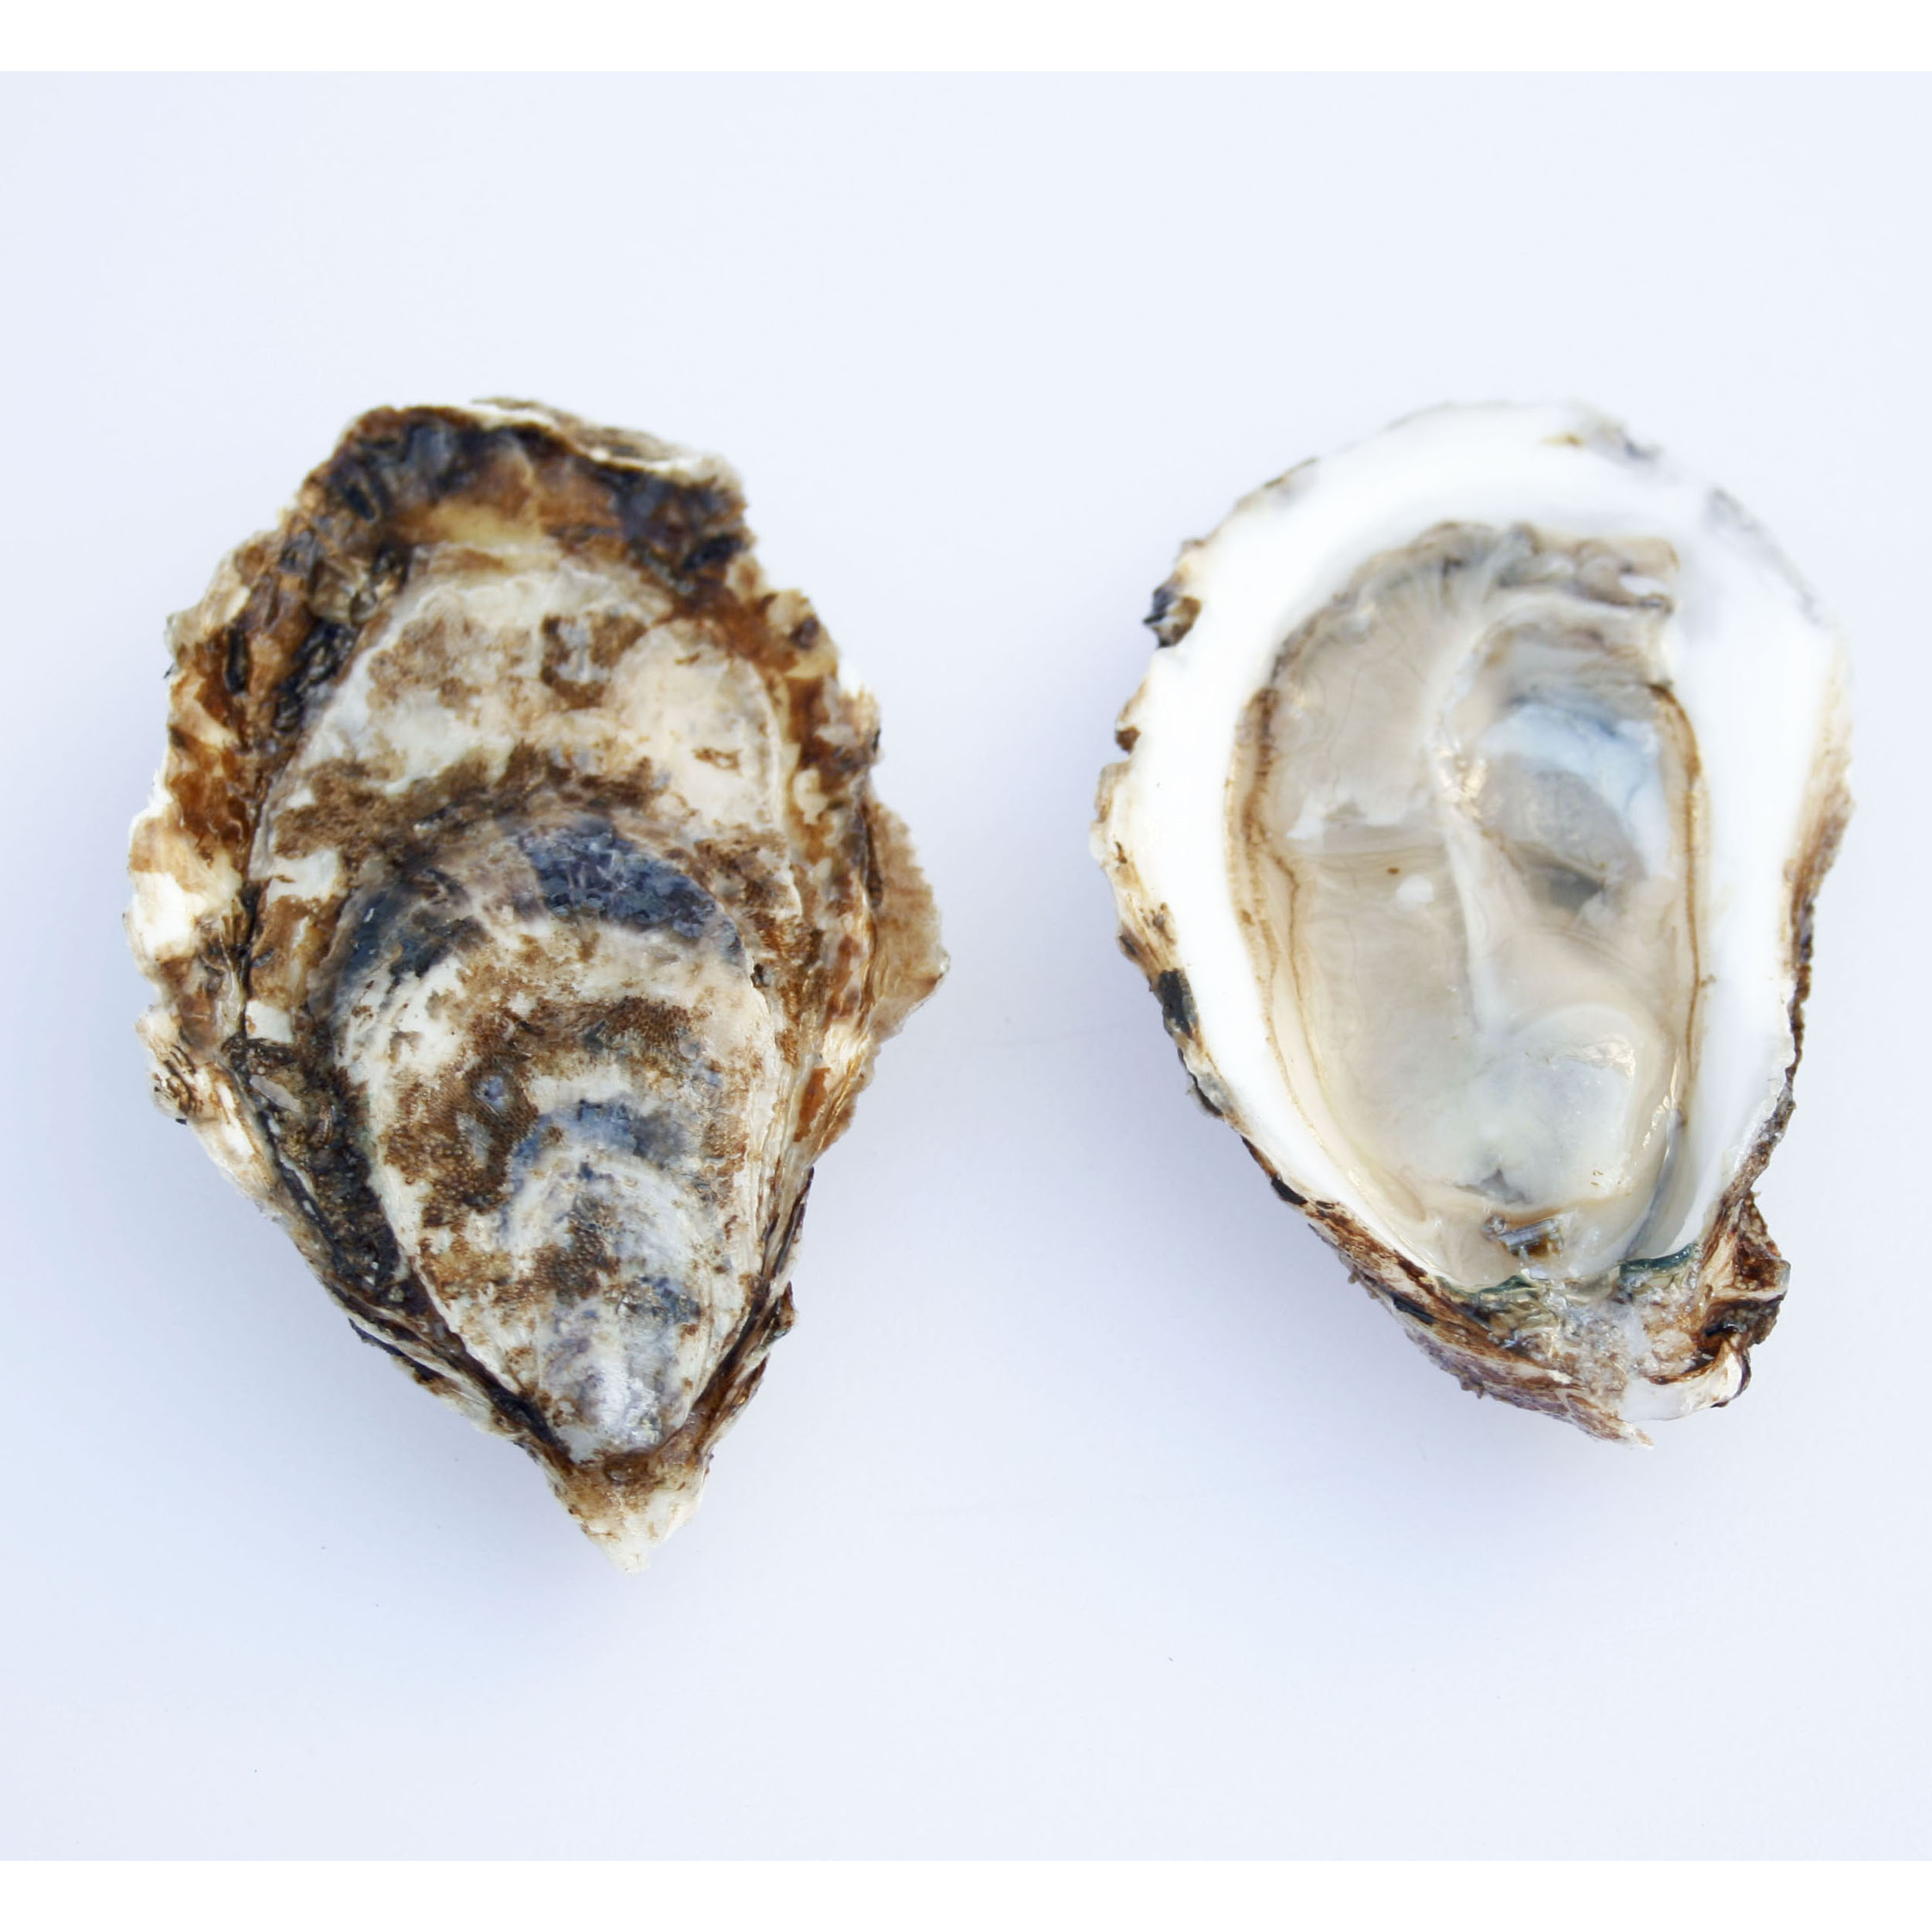 Beau Soleil Oyster Front and Back